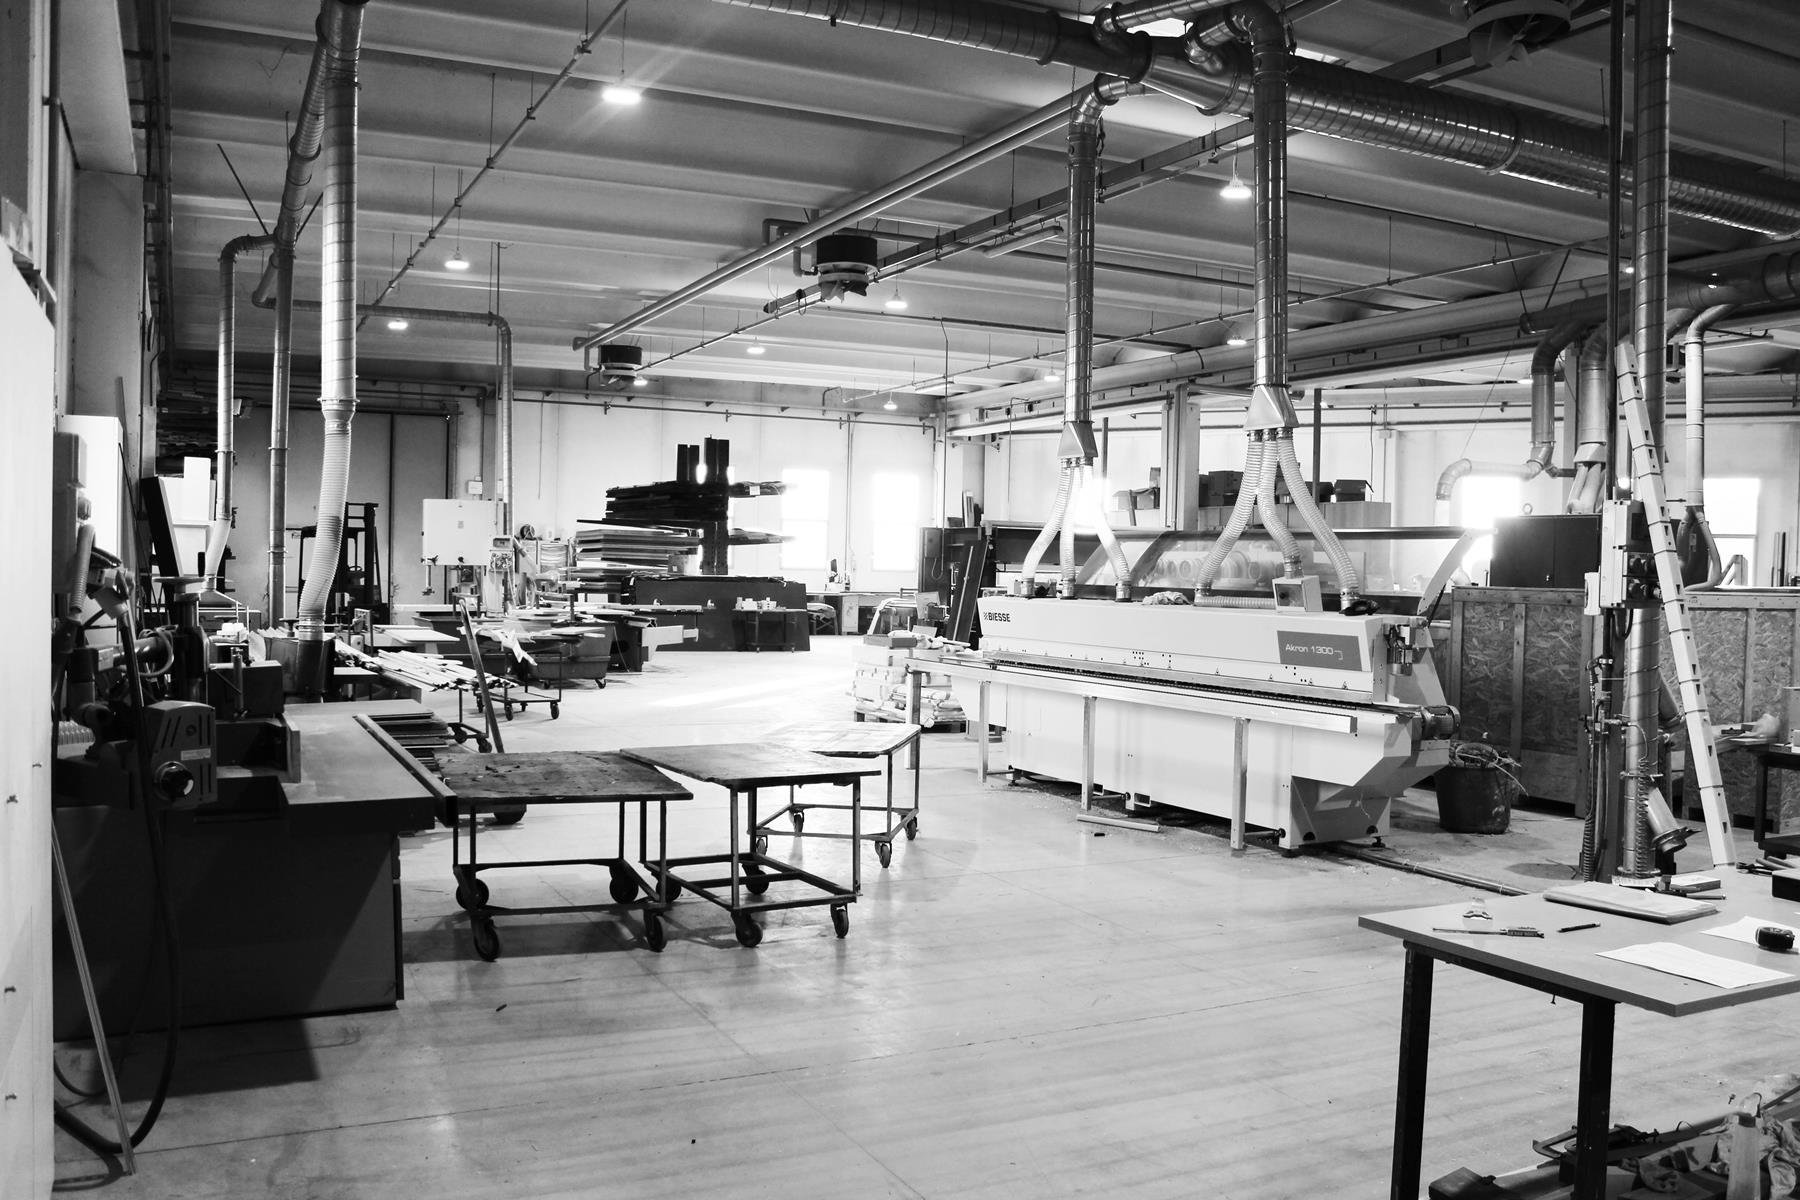 furniture production since 1850 - 8